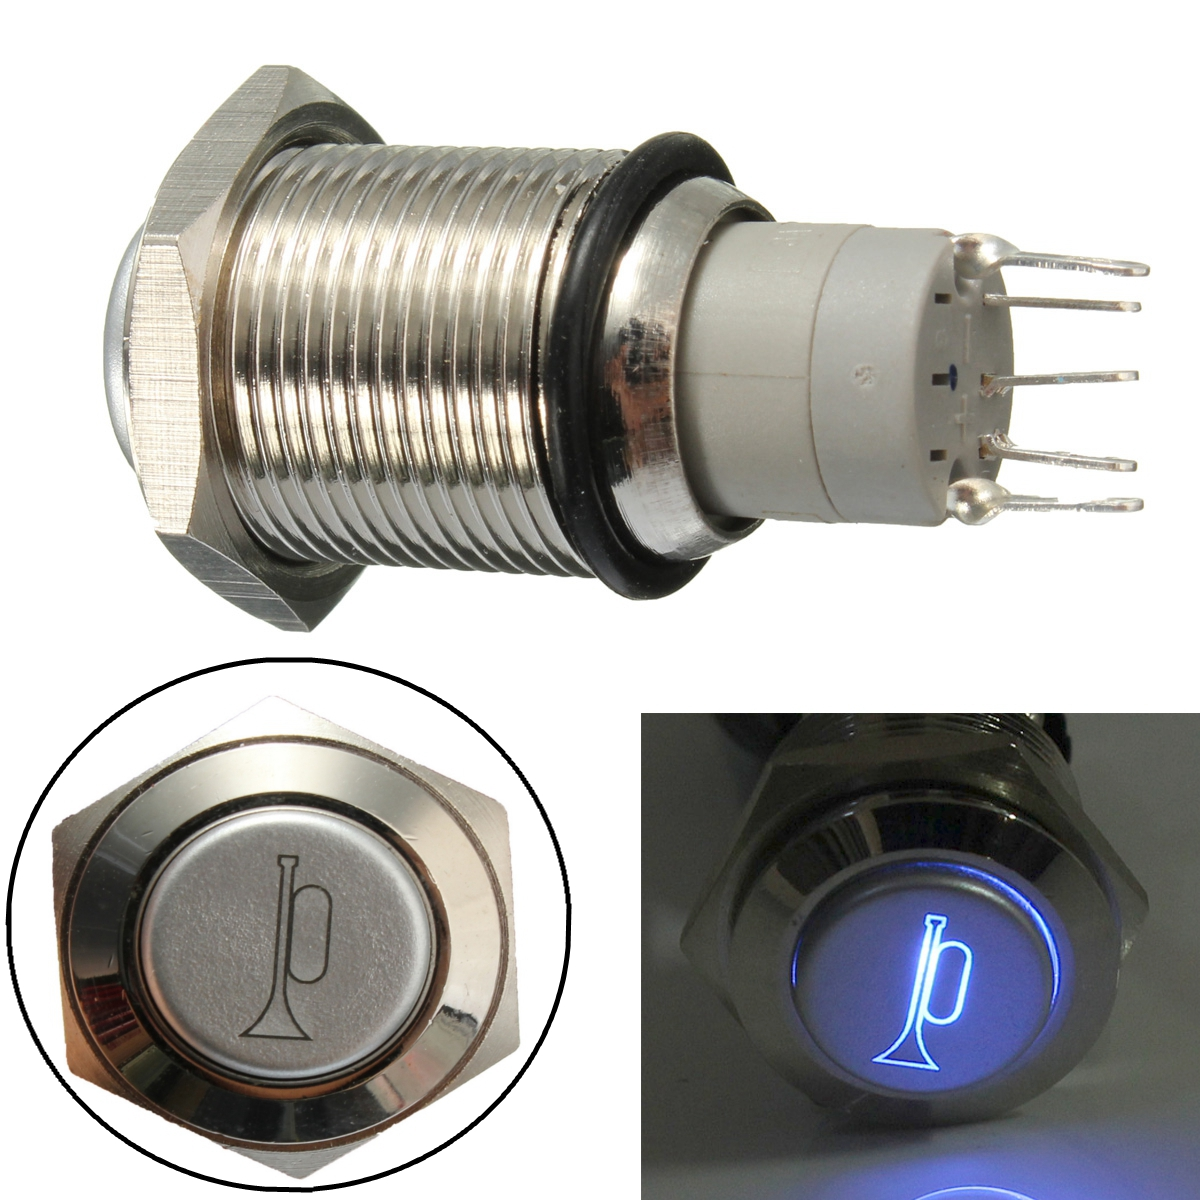 12v 16mm Waterproof Momentary Horn Metal Push Button Switch Blue Led Pushbuttons And Latching On Off In White Lighted